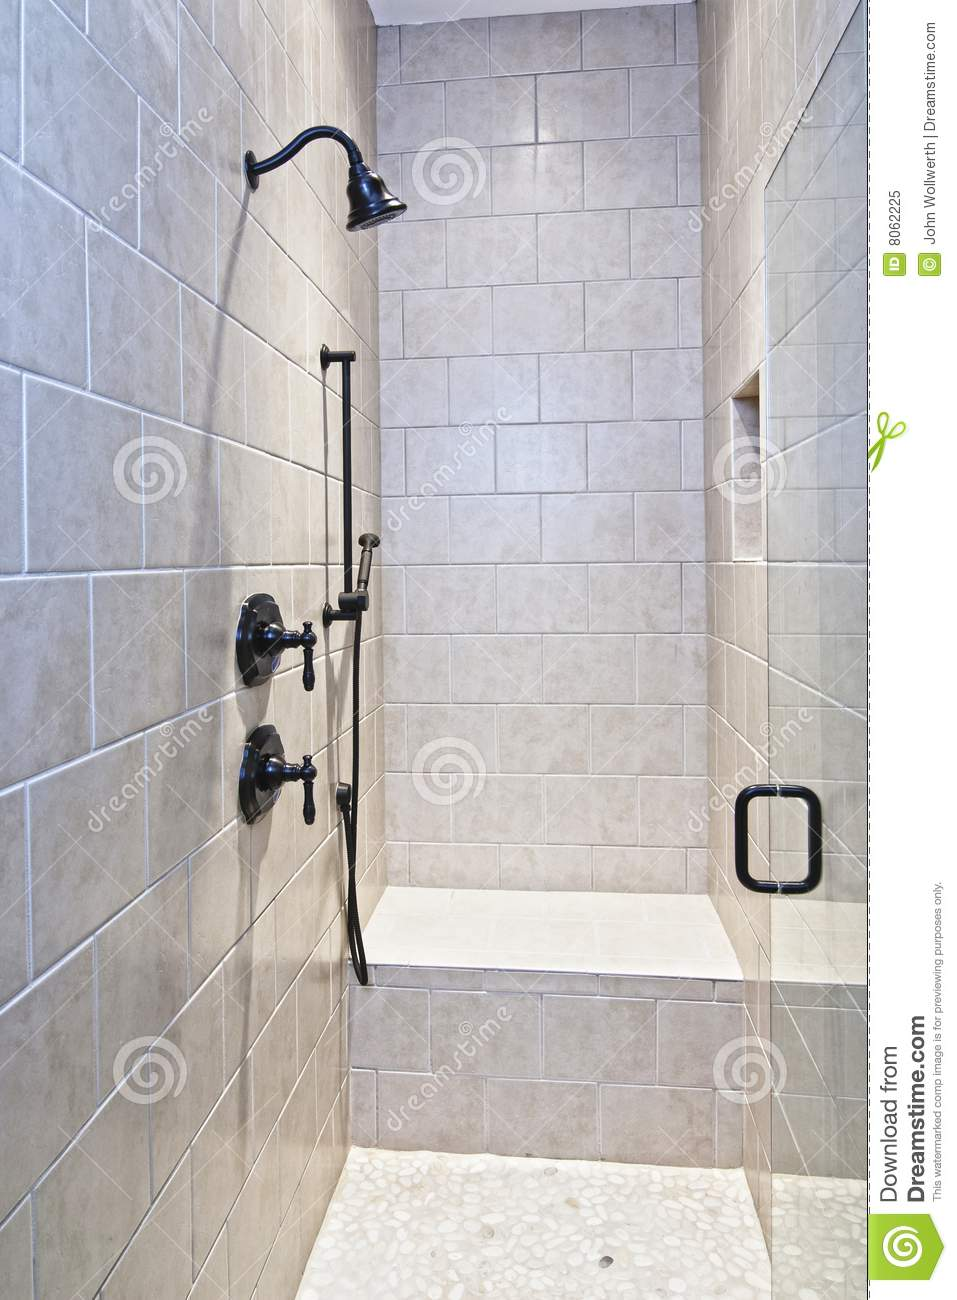 large tile and stone shower royalty free stock photo - Luxury Stone Showers